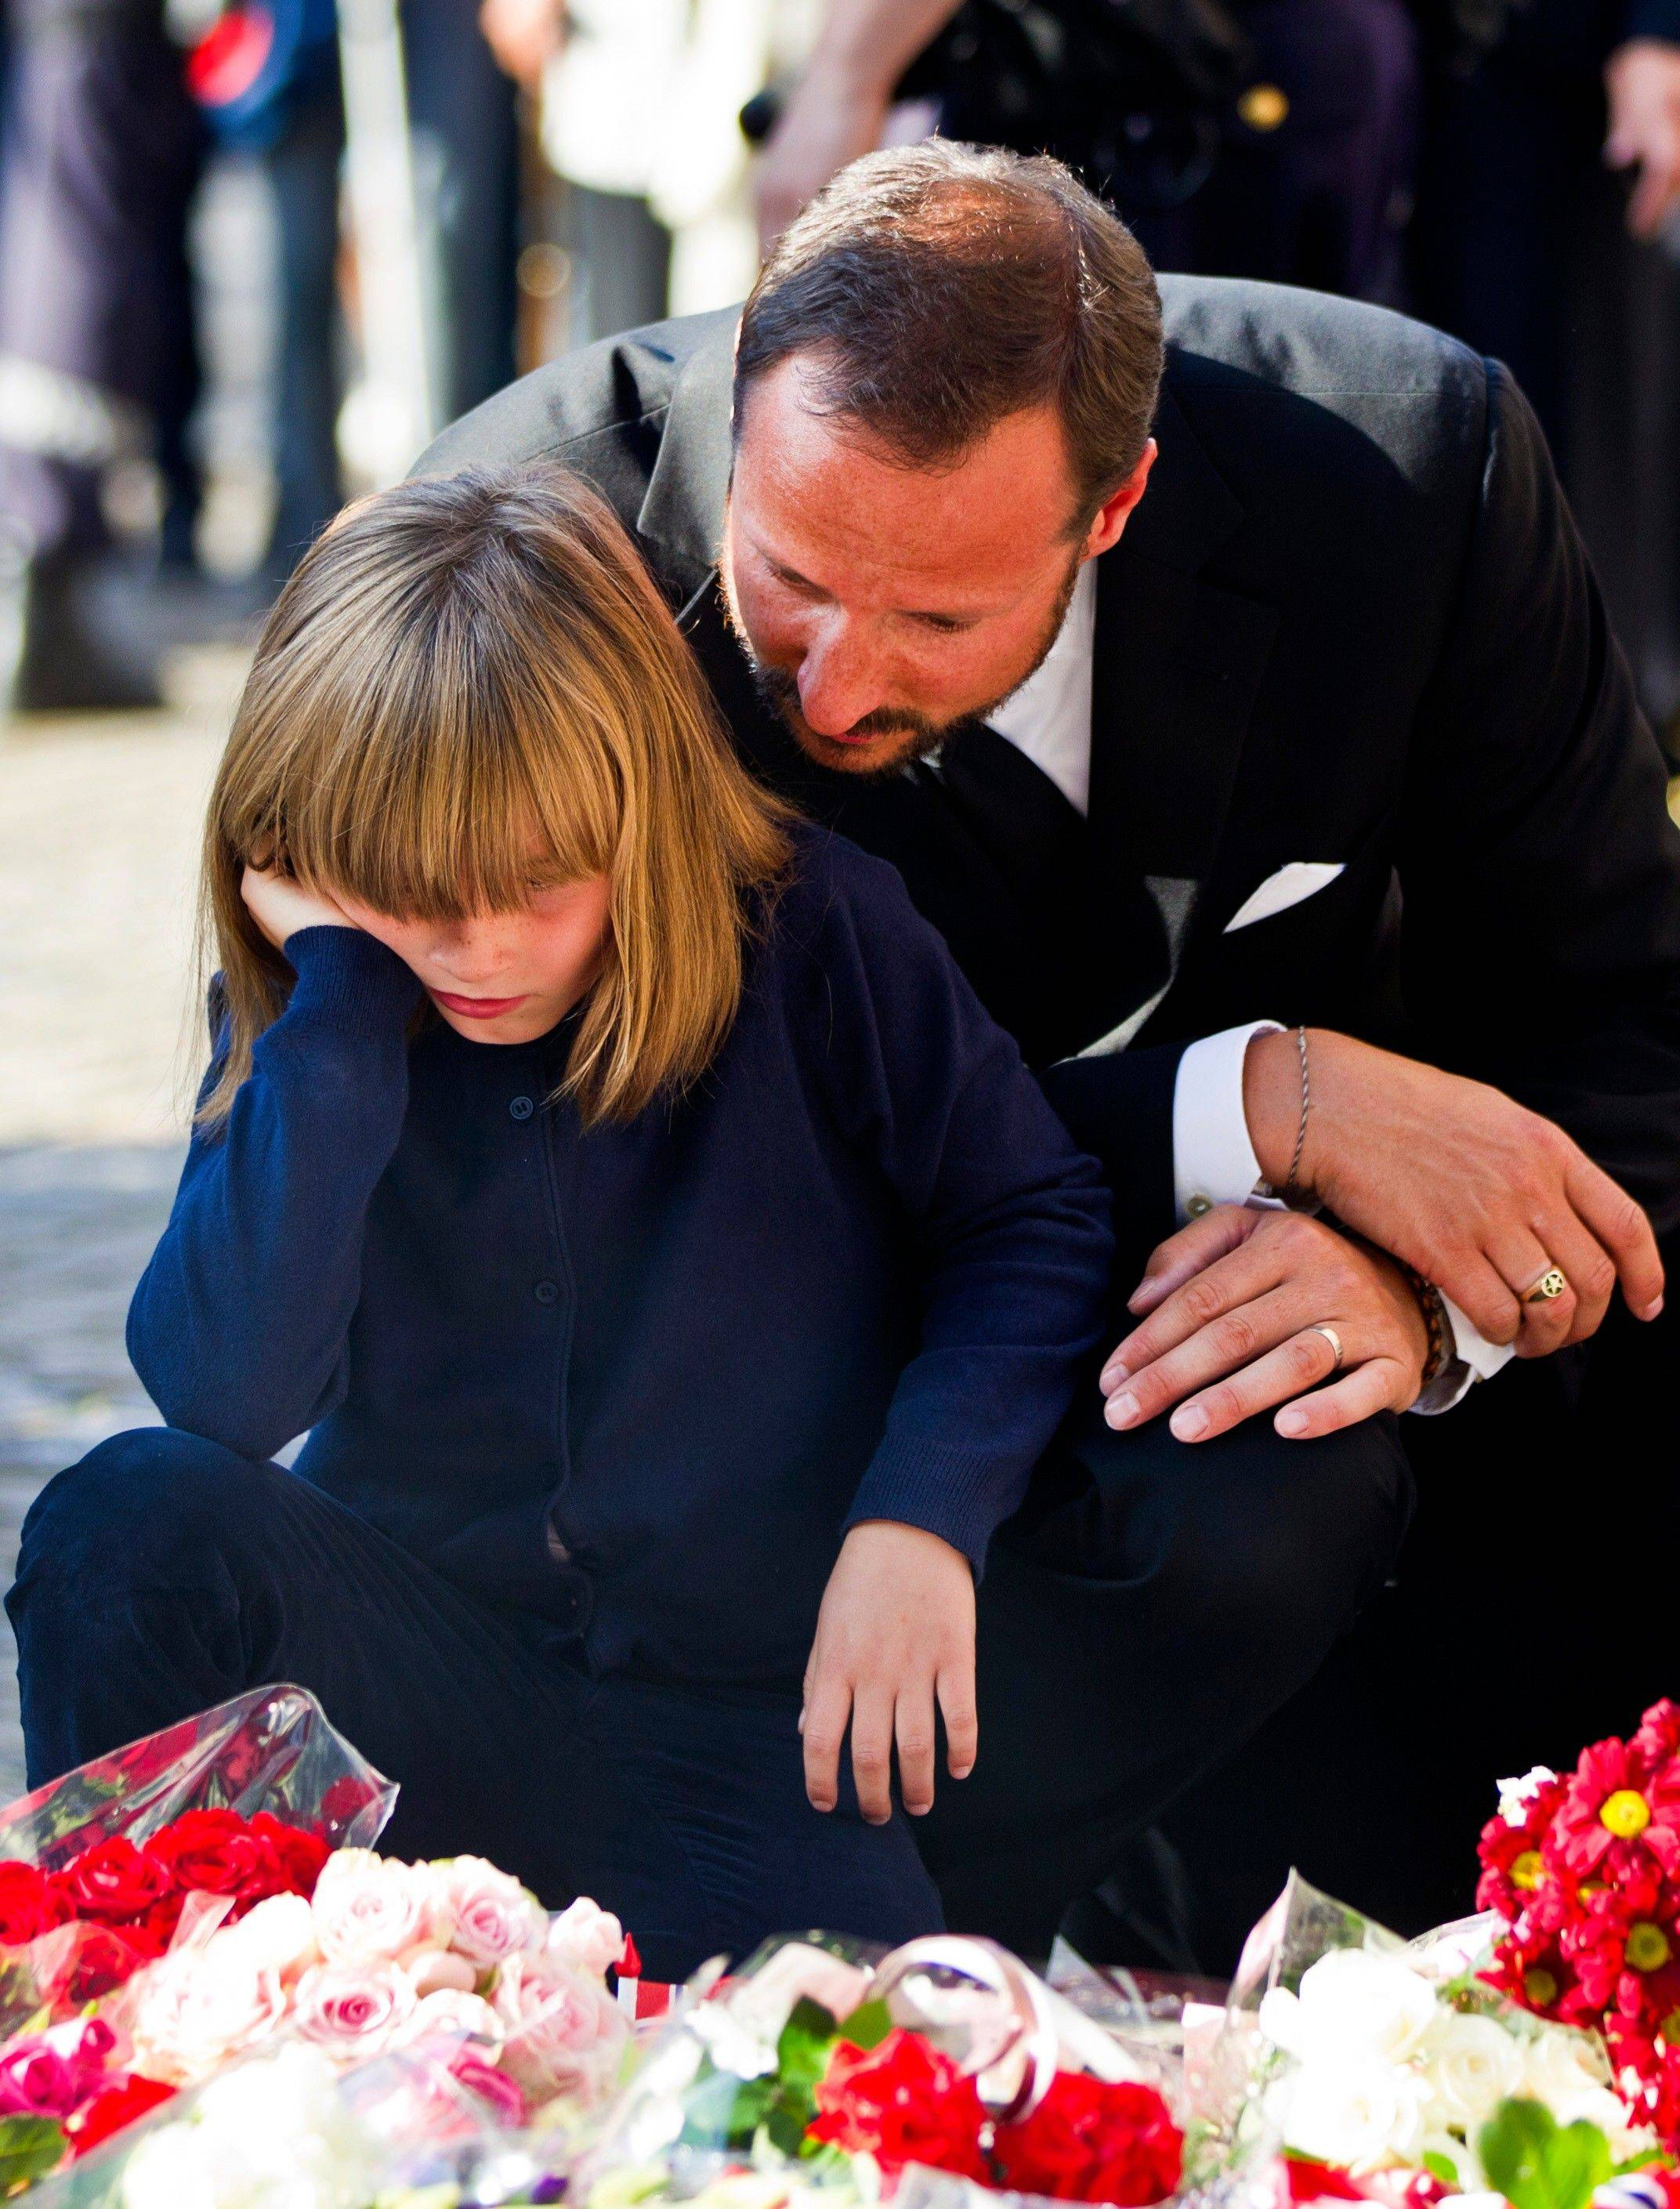 Norwegian Crown Prince Haakon, right, and Princess Ingrid Alexandra attend a vigil for victims of Friday�s attacks in Oslo and Utoya island, outside Oslo Cathedral, Saturday, July 23, 2011. A massive bombing Friday in the heart of Oslo was followed by a horrific shooting spree on an island hosting a youth retreat for the prime minister�s center-left party. The same man, a Norwegian with reported Christian fundamentalist, anti-Muslim views, was suspected in both attacks.